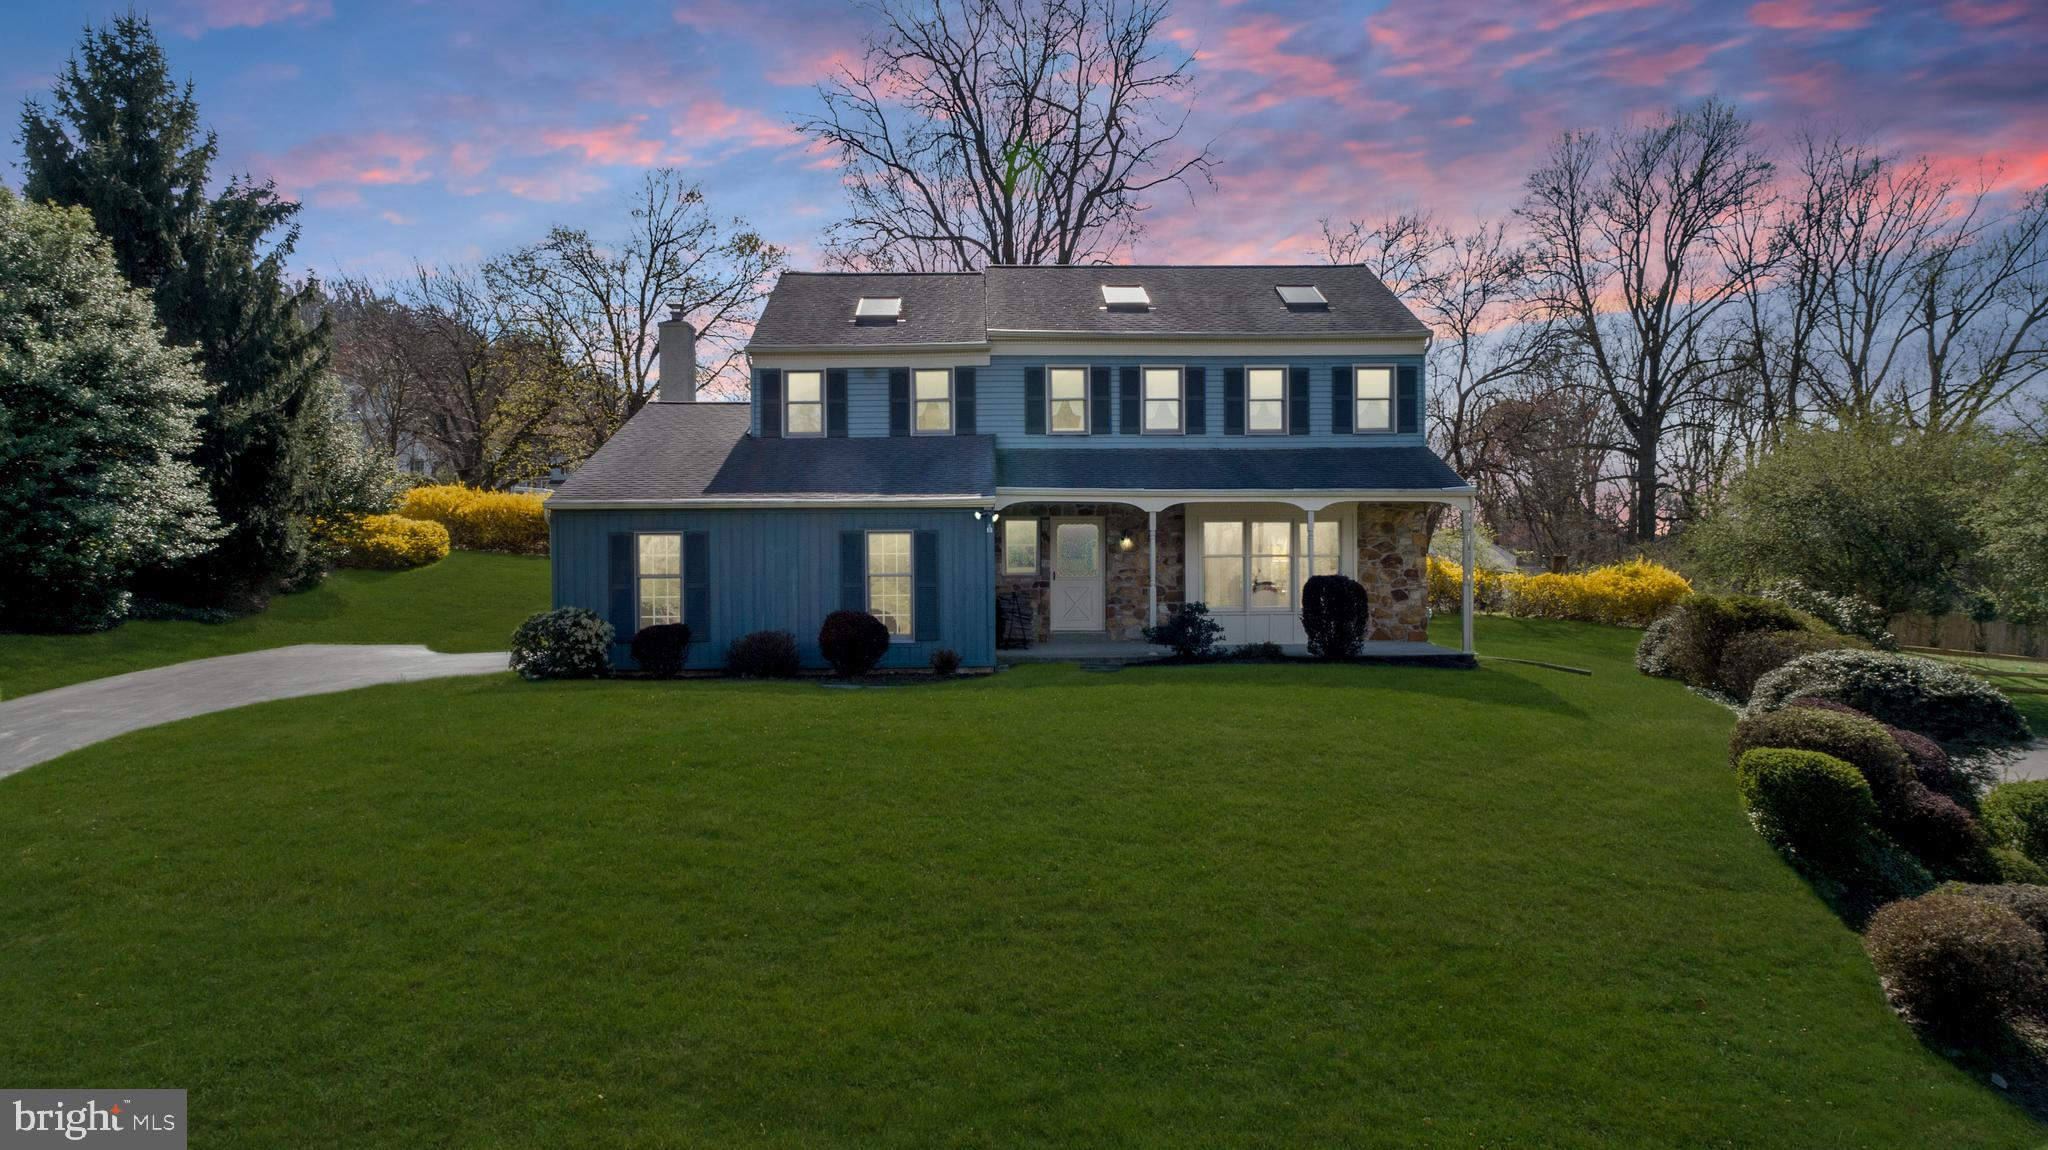 Welcome to 2084 Hawthorne Place, Paoli! At the end of a secluded cul-de-sac stands this Lexton Woods 2-story colonial home with front porch with new vinyl posts. Built in 1983, this 2,355 square foot home including 4 bedrooms and 2.5 baths has been lovingly maintained. Step into the entry foyer with hardwood floors and notice the traditional layout. A carpeted formal living room with triple window flows into the dining room with crown molding and chair rails plus new Anderson windows. An open concept eat-in kitchen features Corian counters, 5 burner glass top stove, microwave, under mount sink, wood cabinetry, ceiling fan with light, and casement windows. Step down into the family room with track lighting and Velux skylight plus sliding glass doors to the brick patio and backyard. The wood burning fireplace with stone surround is the focal point of this room. Access the laundry area, powder room, and 2-car garage that includes electric openers from here. The carpeted upstairs hosts a primary bedroom suite with Velux skylight, walk in closet, and new vanity top in the bathroom and Velux skylight plus three additional bedrooms, each with a Velux skylight that share the hall bathroom with double bowl sink & Velux skylight. Attic access can be found in the hallway. This home also has an unfinished full basement. * * * Visit the personalized website that we created especially for this home at http://2084hawthorneplace.listingseller.com/ to view enhanced professional photography, aerial drone footage, community video, detailed floor plan, virtual reality walk through, and three-dimensional Matterport tour * * * Only a 1.3 mile walk to the recently renovated Paoli Train Station. Situated in Pennsylvania's top school district, Tredyffrin-Easttown.